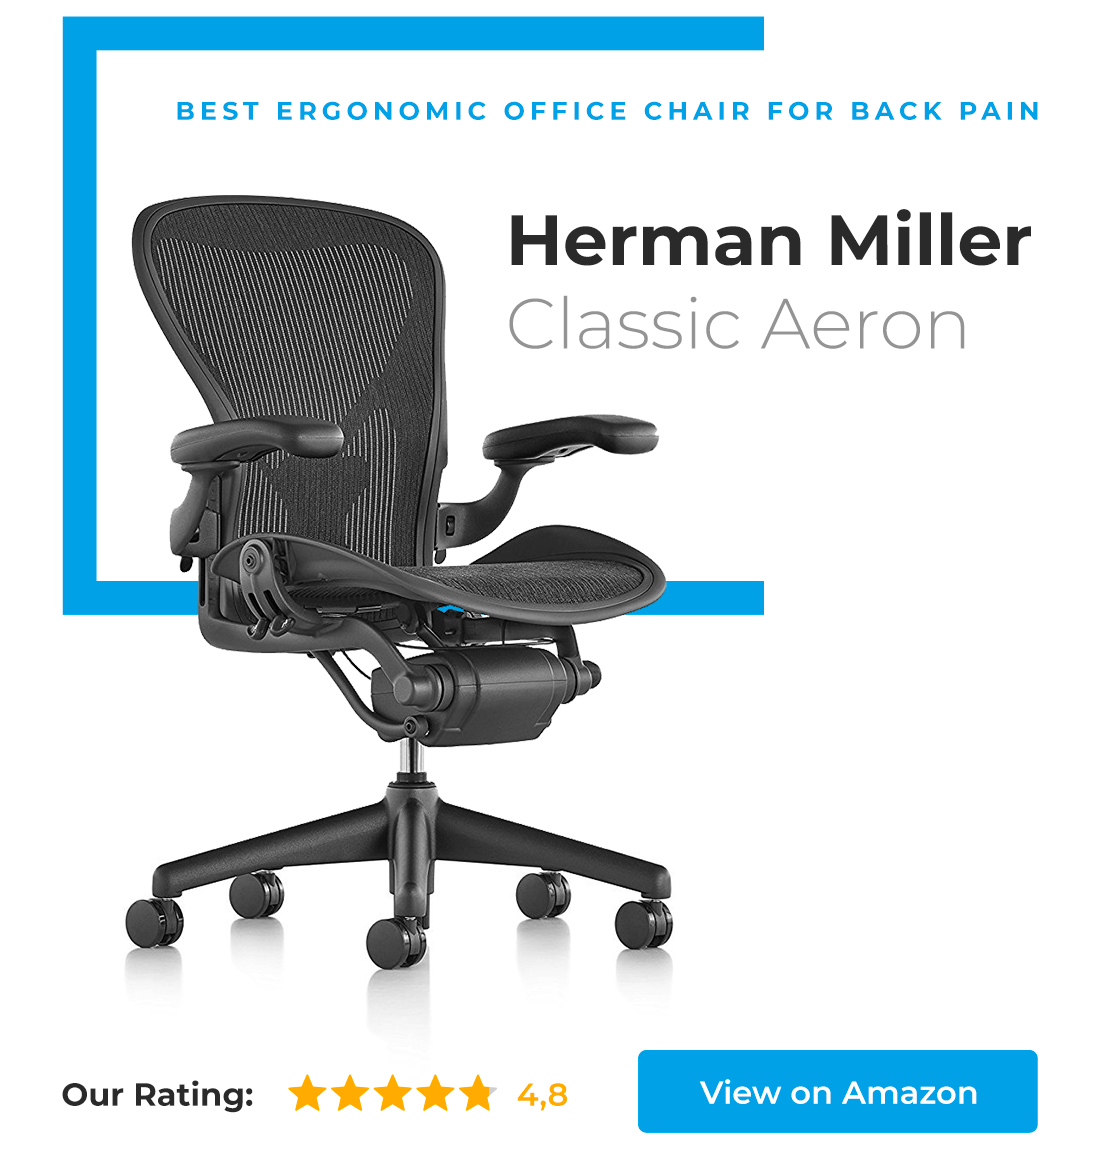 Most popular, and probably best ergonomic office chair for back pain - Herman Miller Classic Aeron.